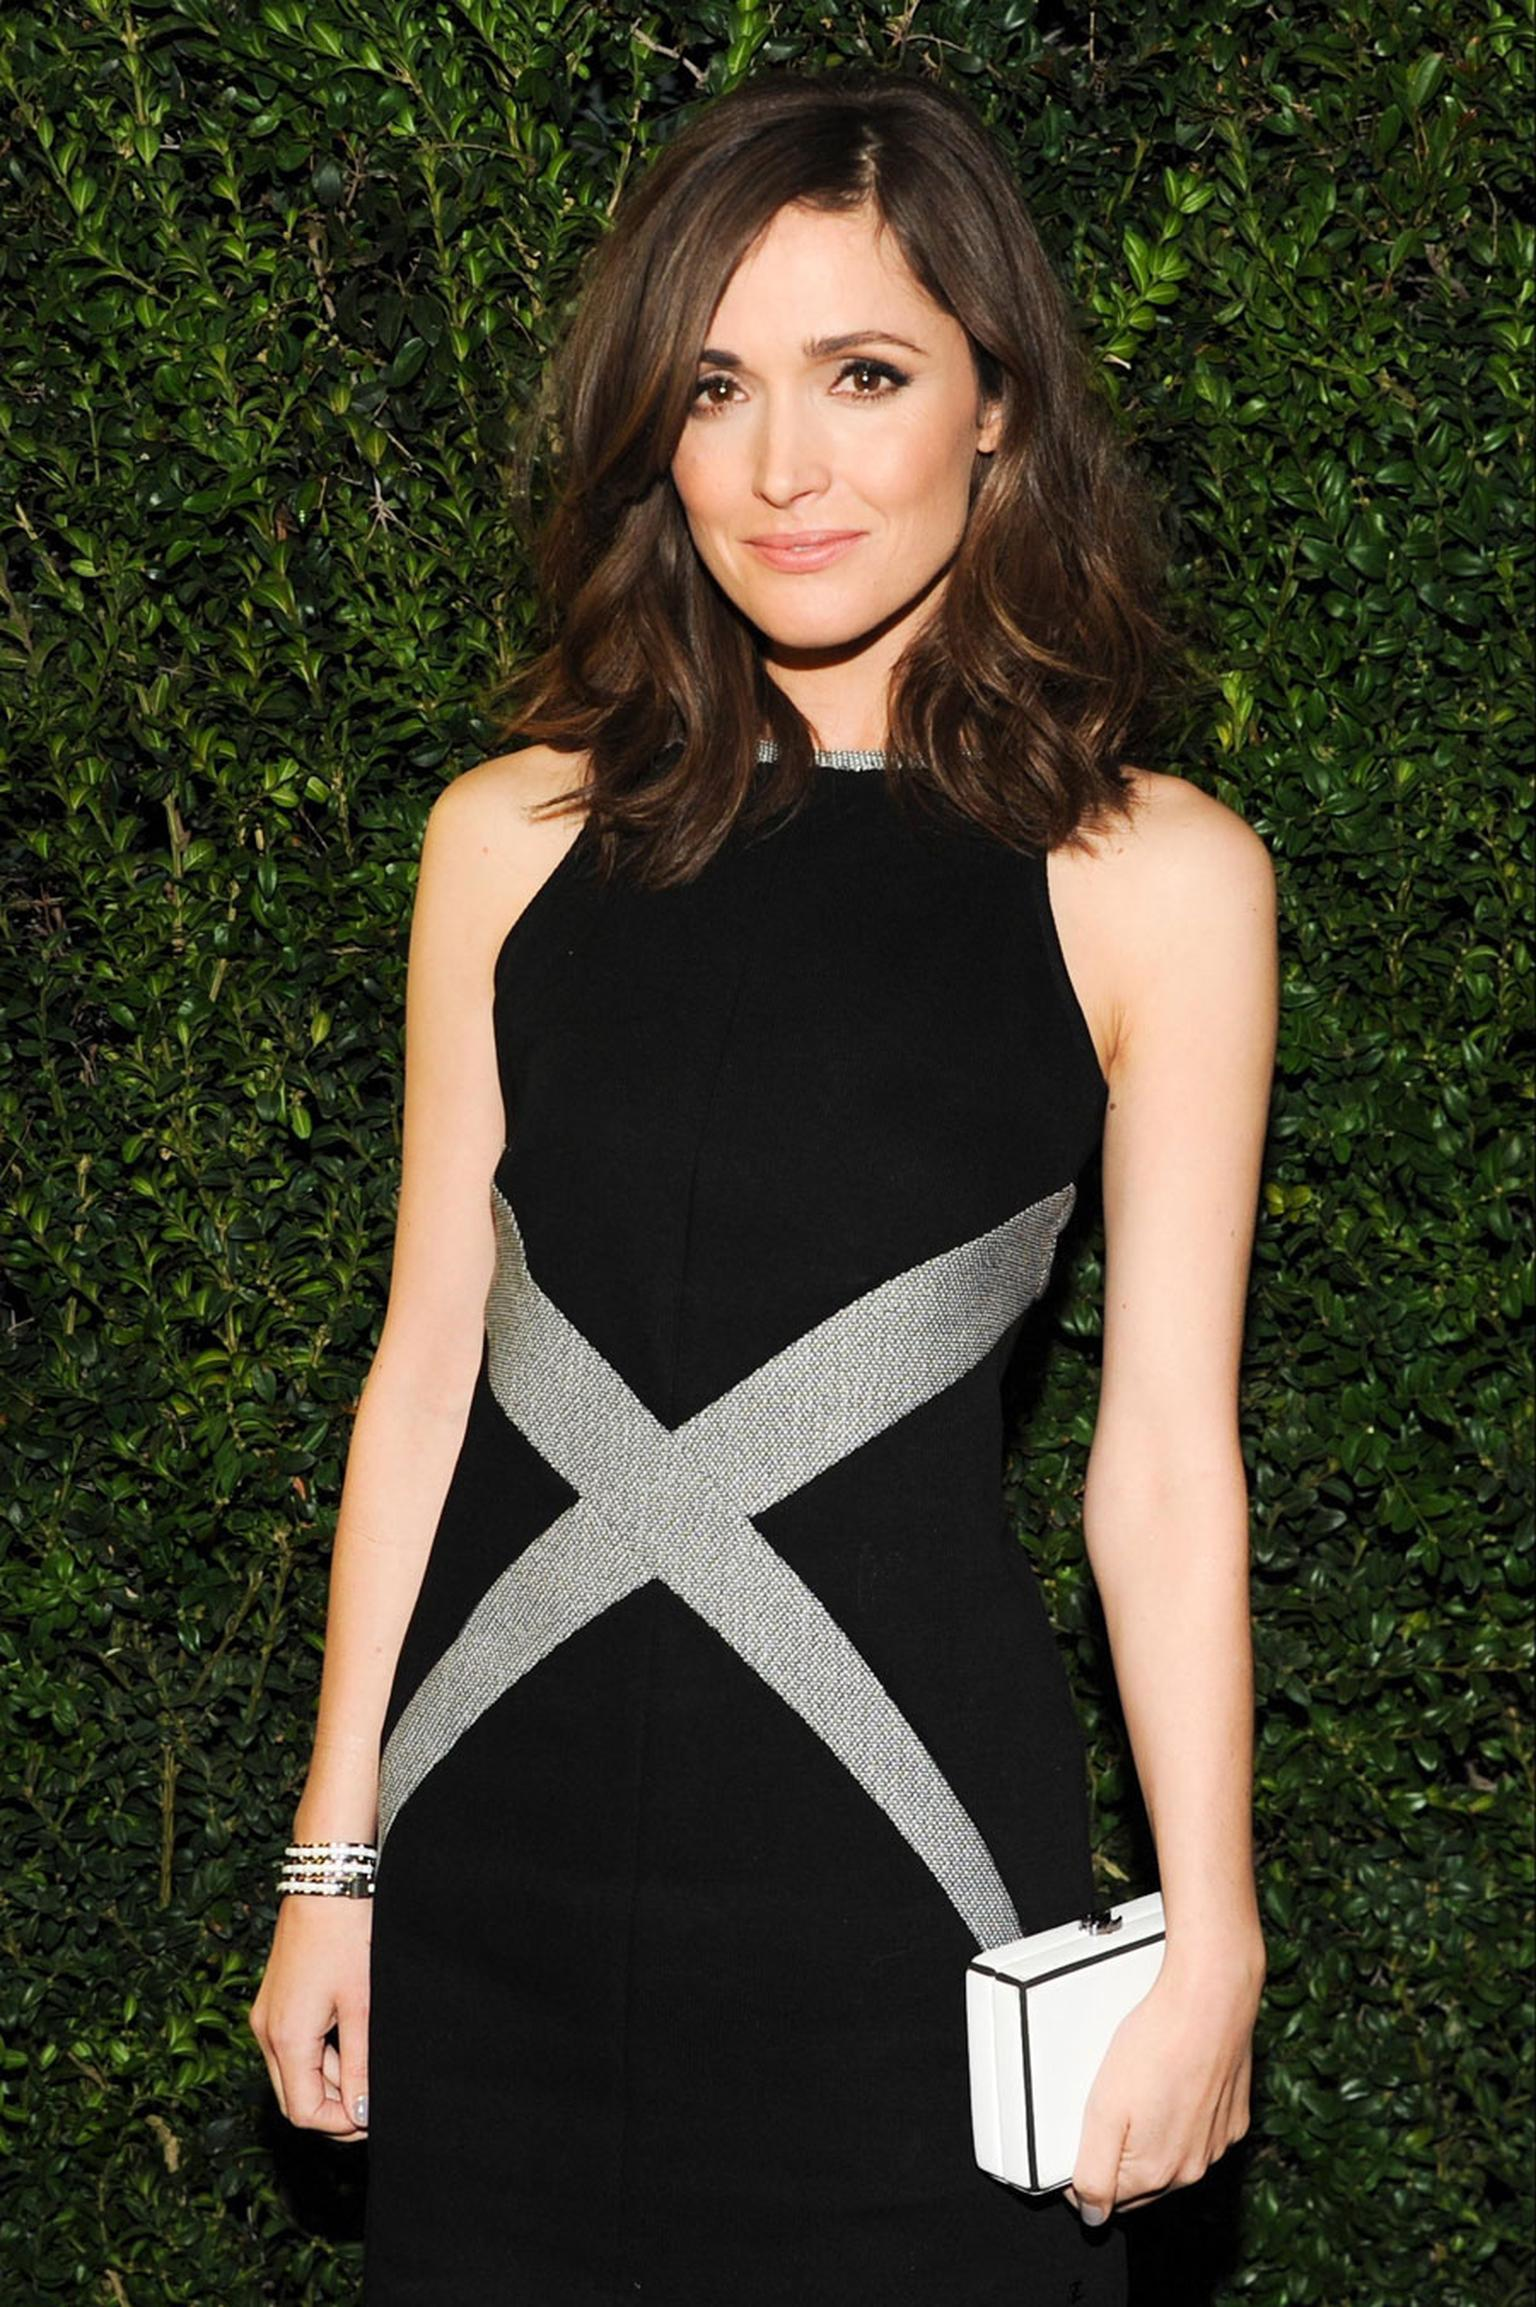 Rose-Byrne-Chanel-and-Charles-Finch-Oscars-Dinner-23-february-2013